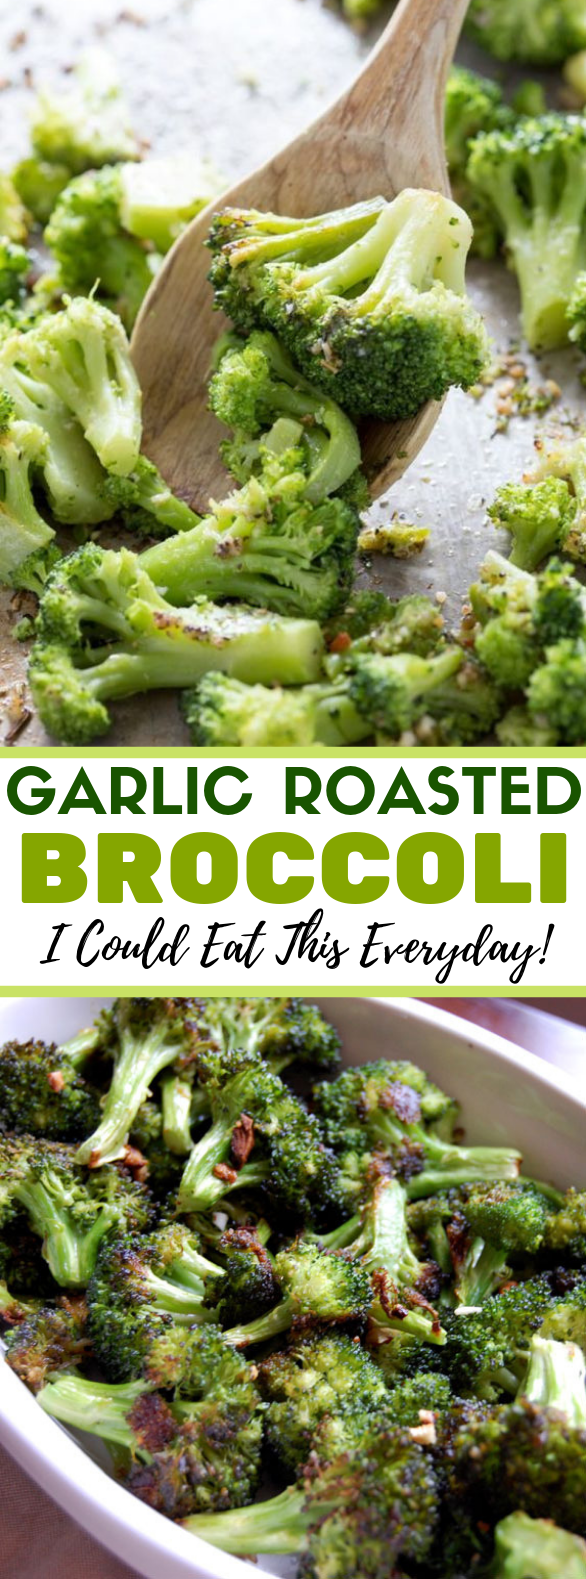 Garlic Roasted Broccoli (I Could Eat This Everyday) #vegetarian #delicious